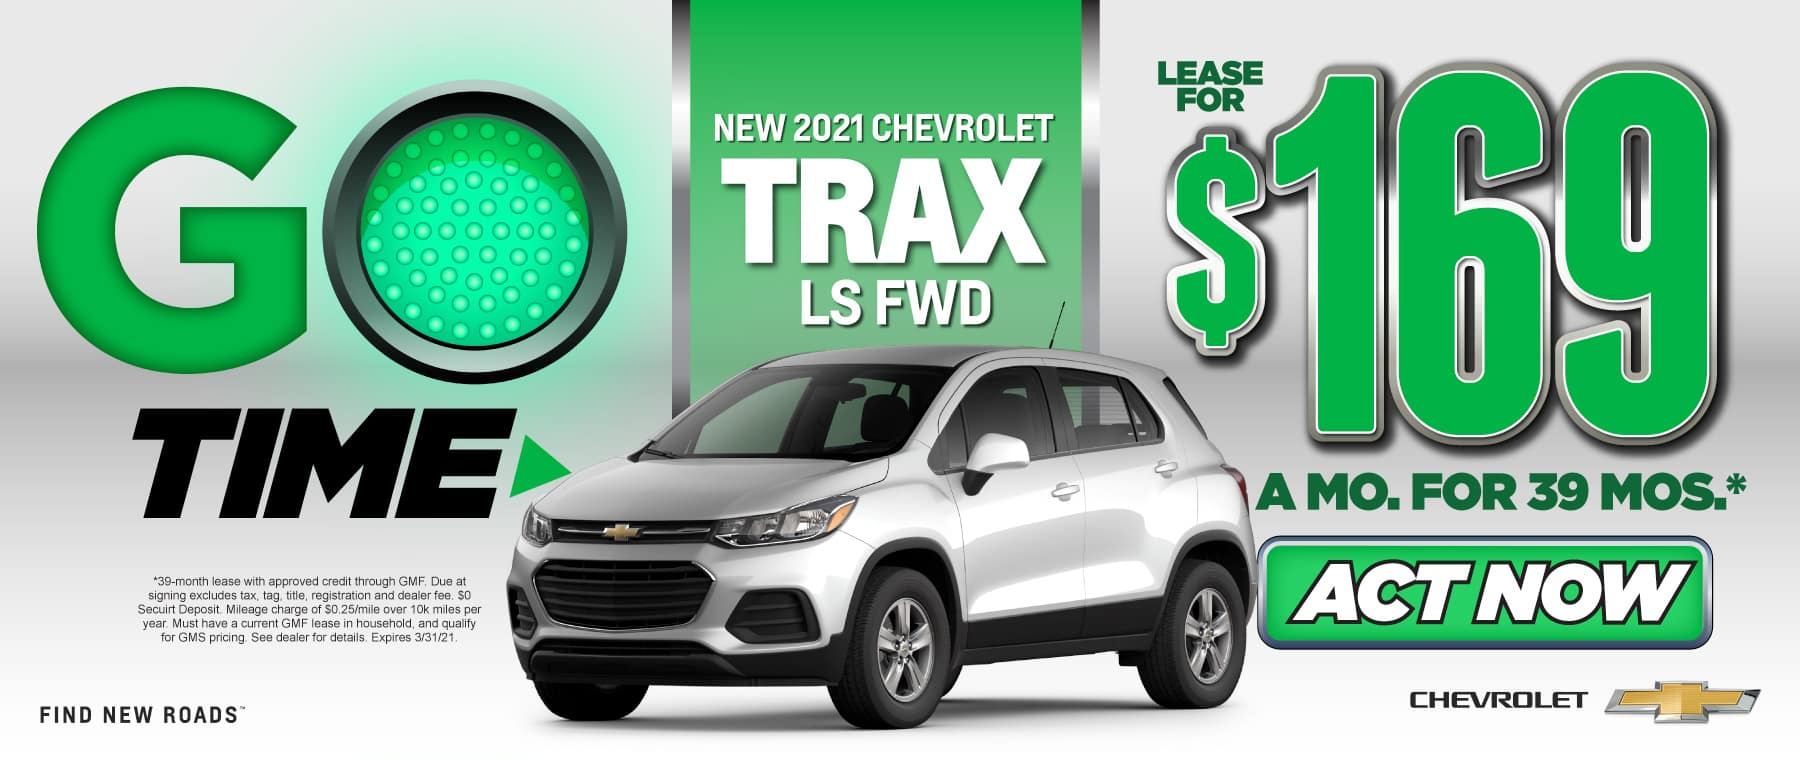 New 2021 Trax - Only $169 a month - Act Now